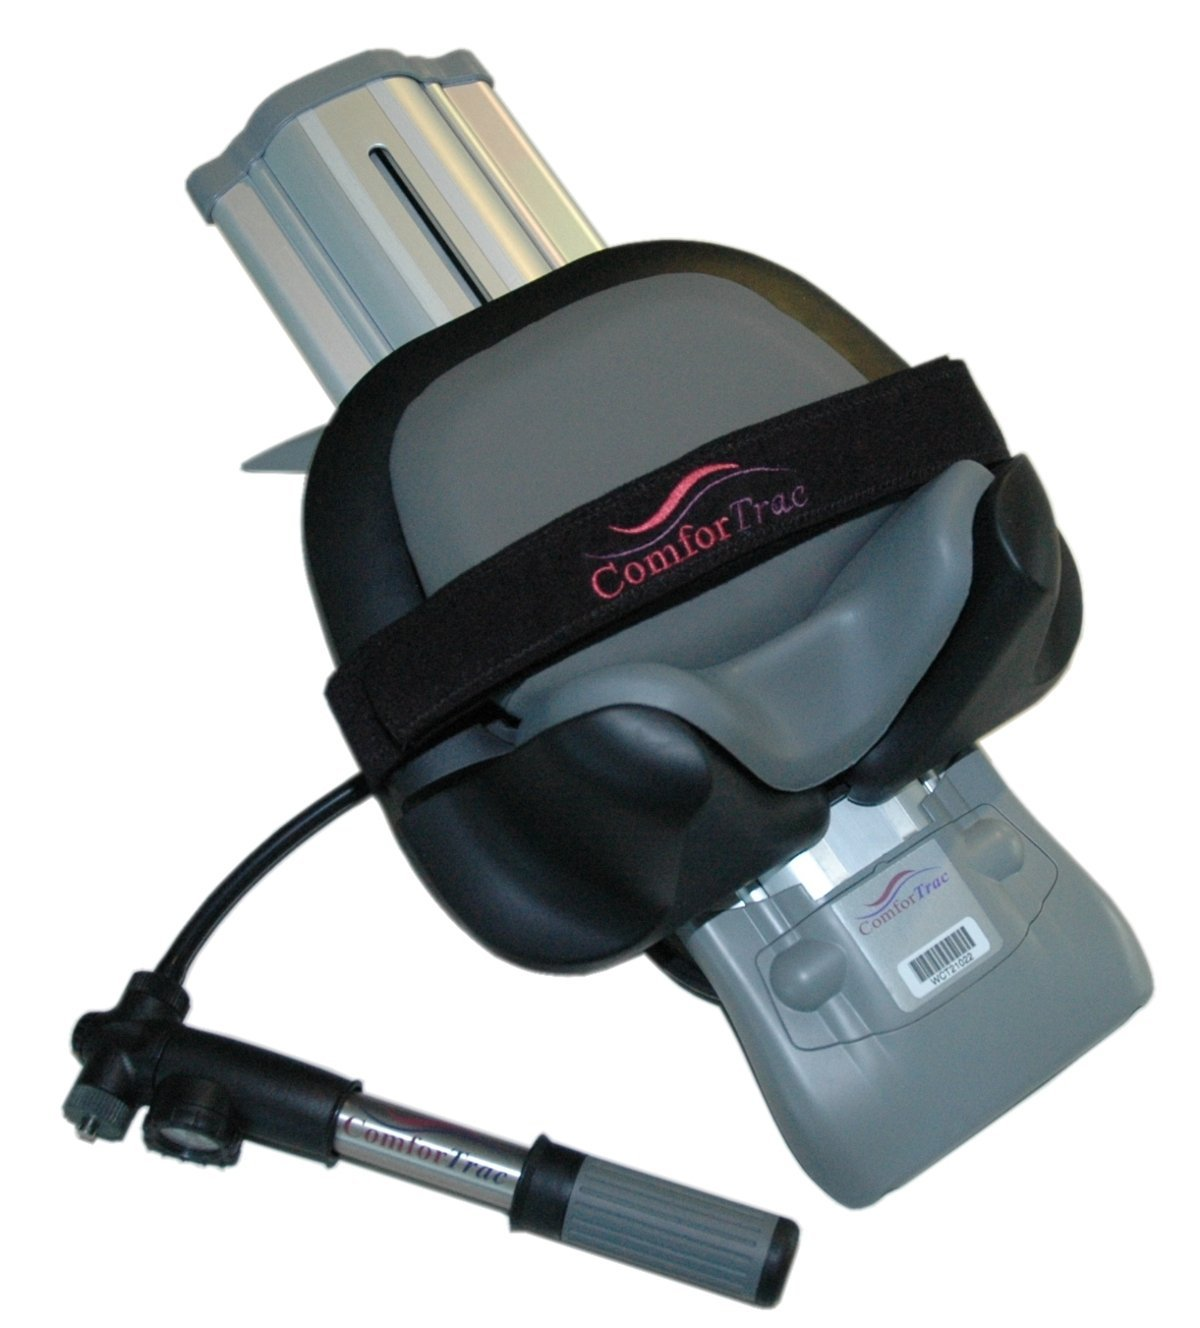 NEW Model Comfortract Home Cervical Traction Unit